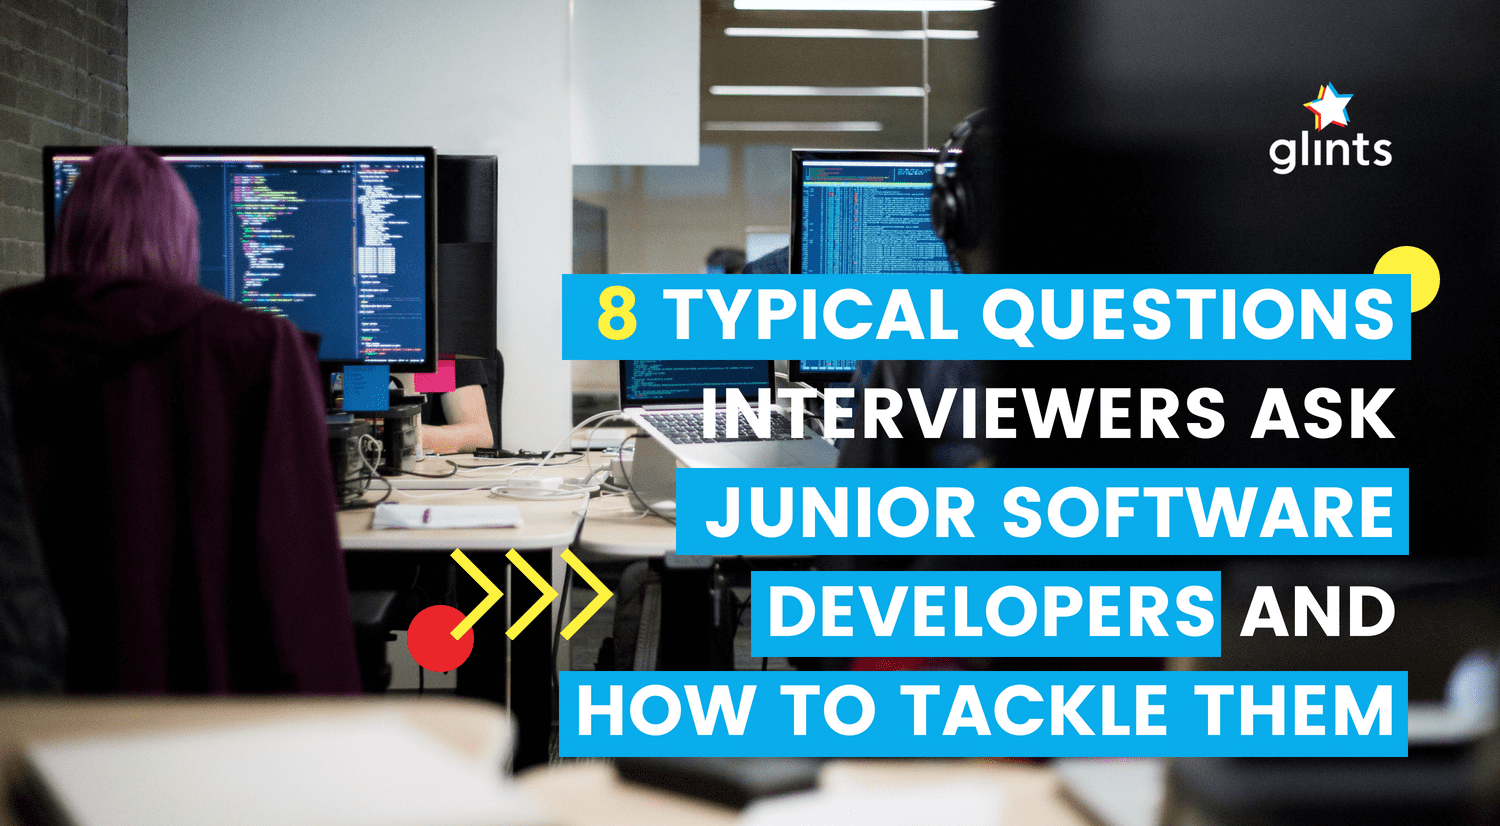 8 Typical Questions Interviewers Ask Junior Software Developers And How To Tackle Them Glints